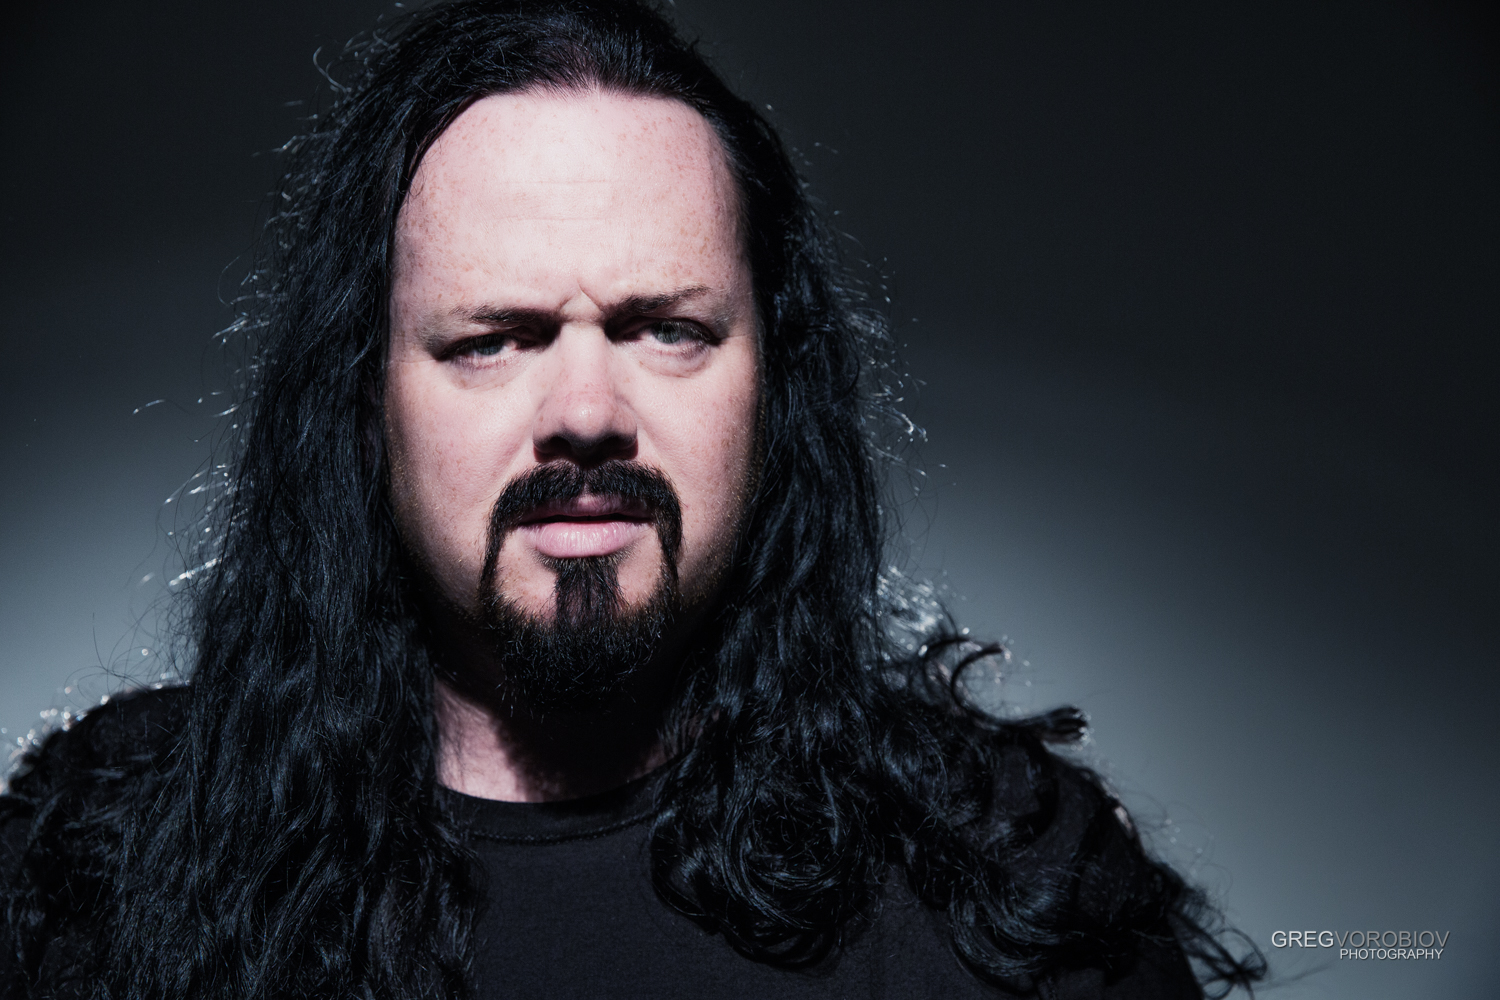 tom_englund_evergrey_by_greg_vorobiov_1_NV8A5458-Edit.jpg